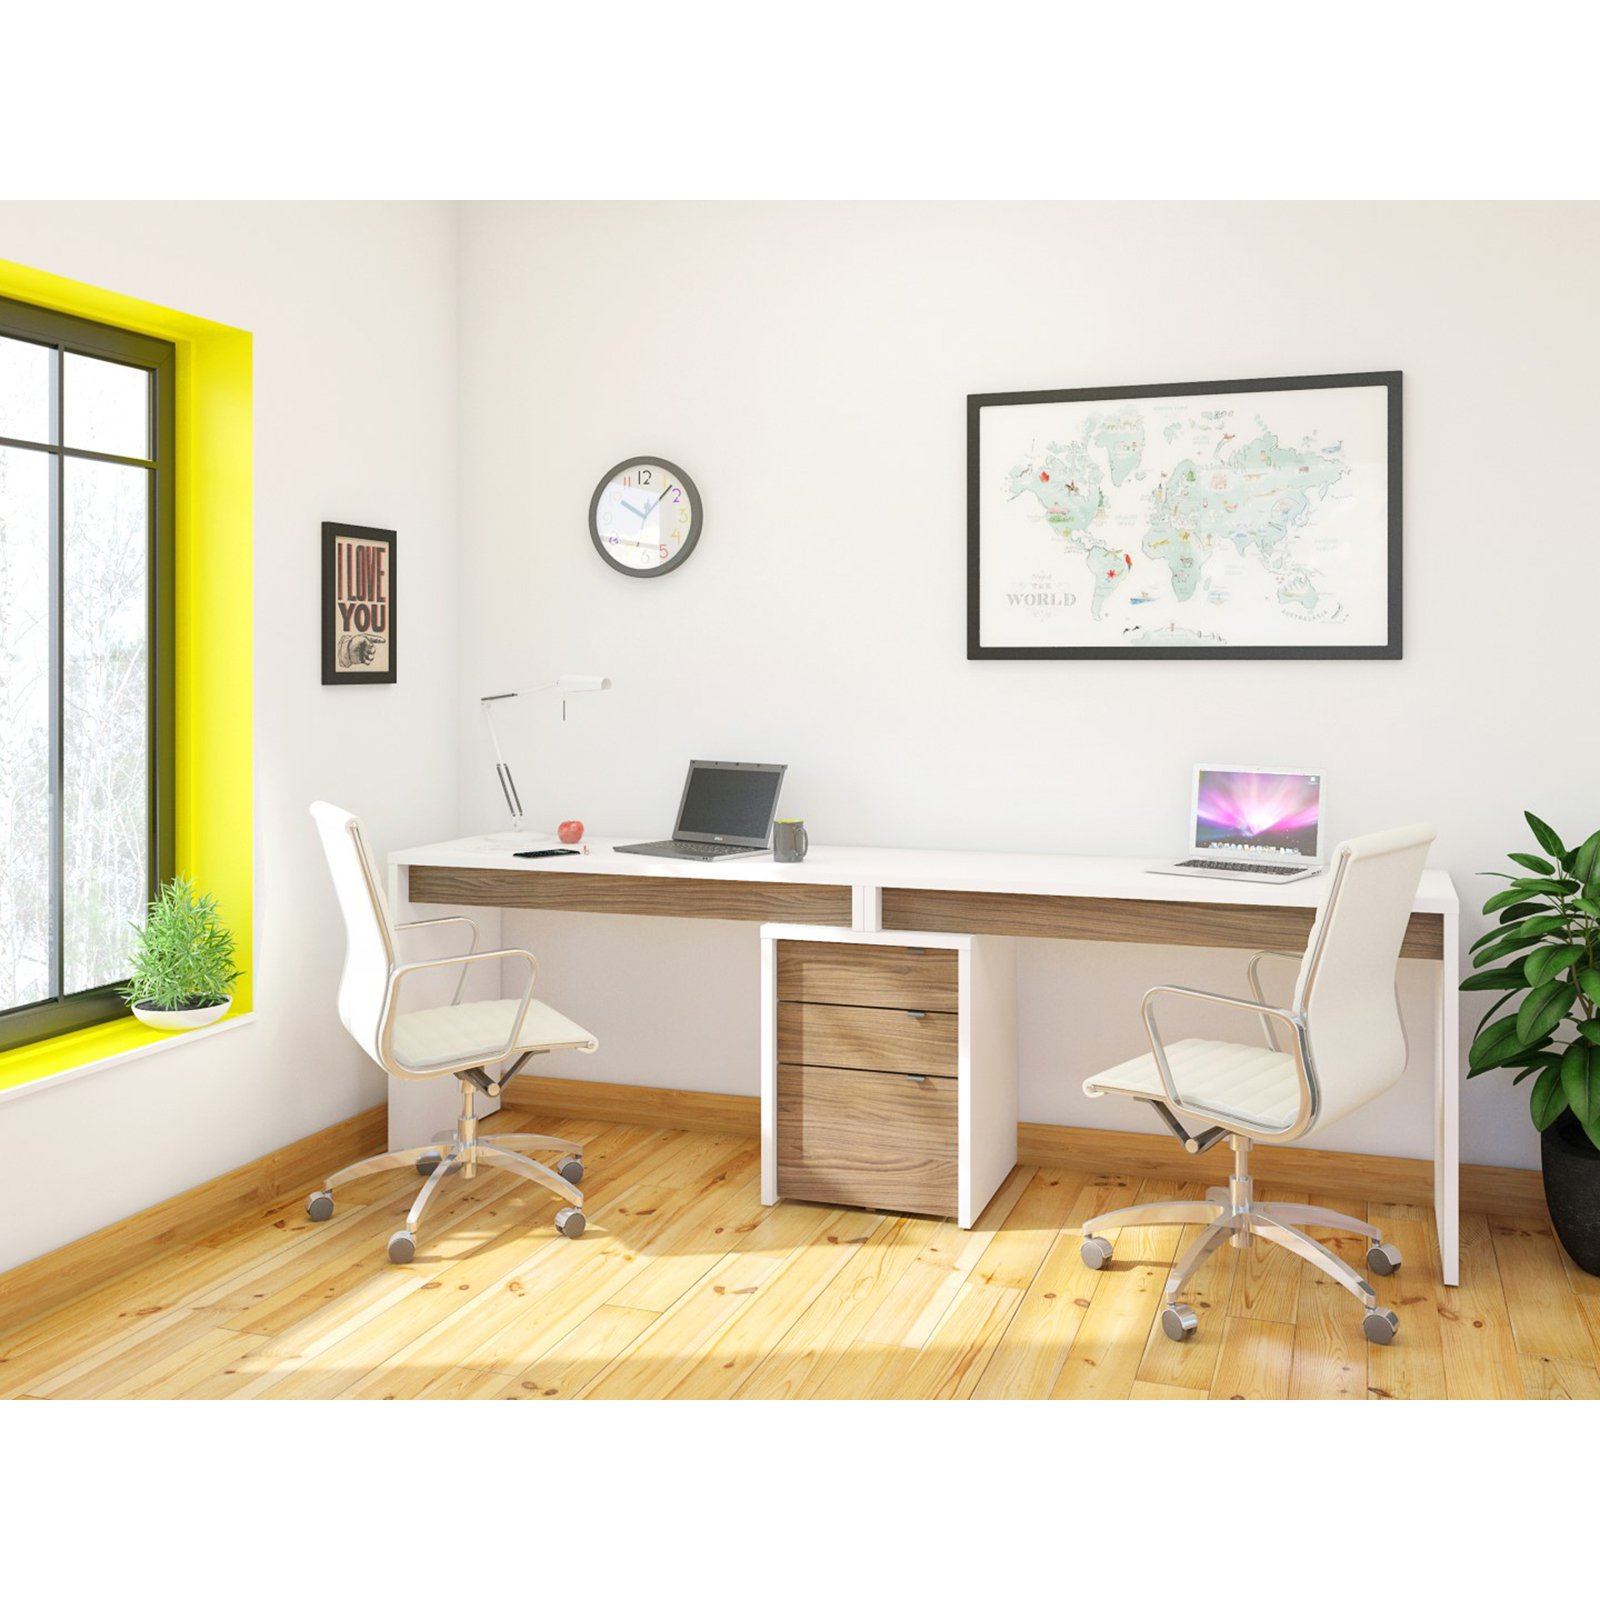 Nexera Liber-T 2 Person Desk with Filing Cabinet - White and Espresso